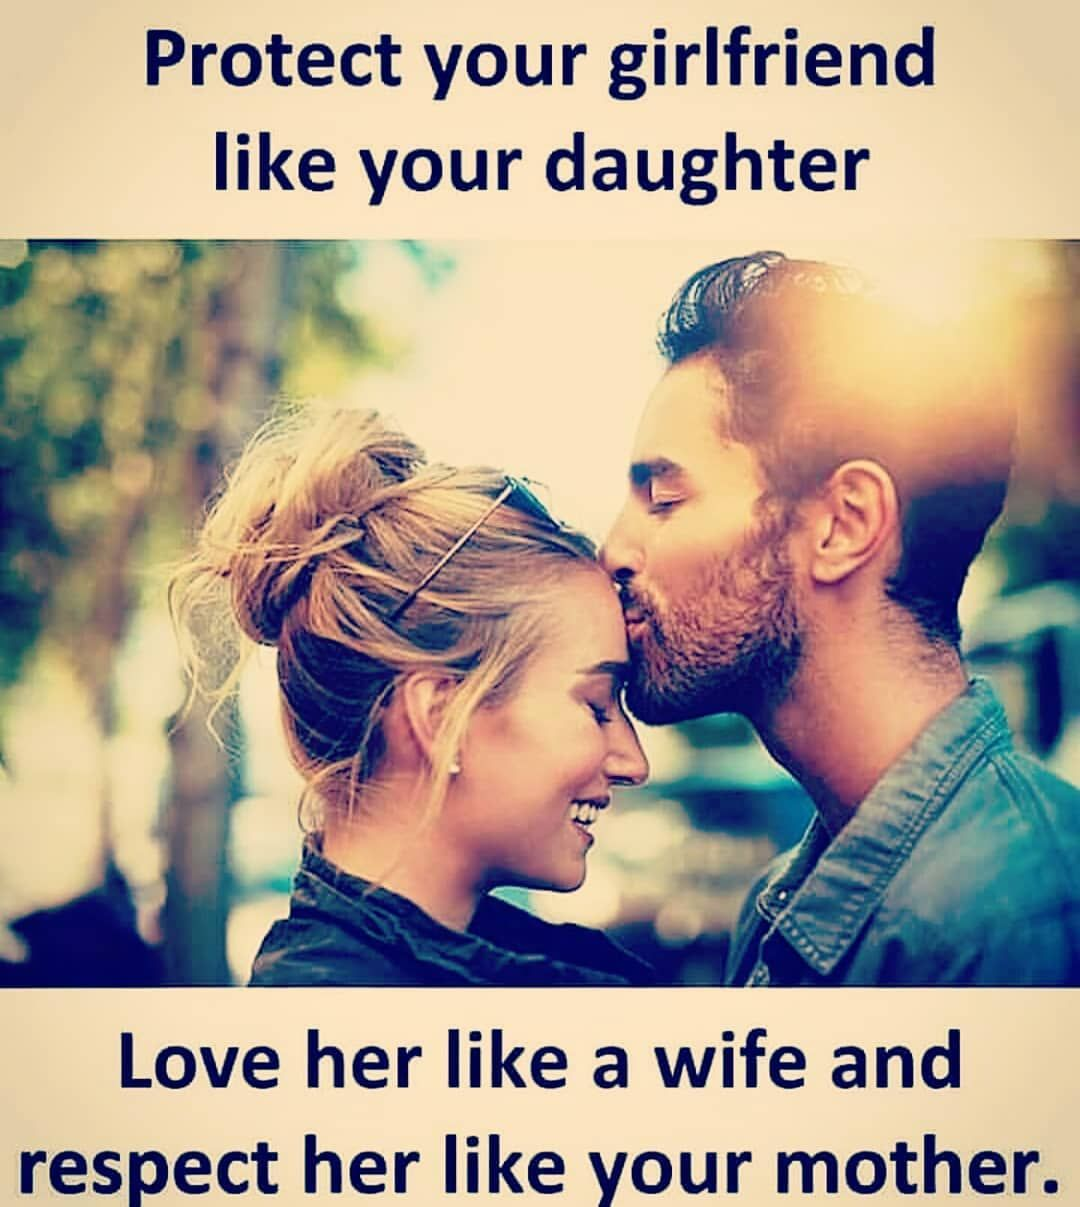 Comment Agree Follow Here For Most Romantic And Heart Touching